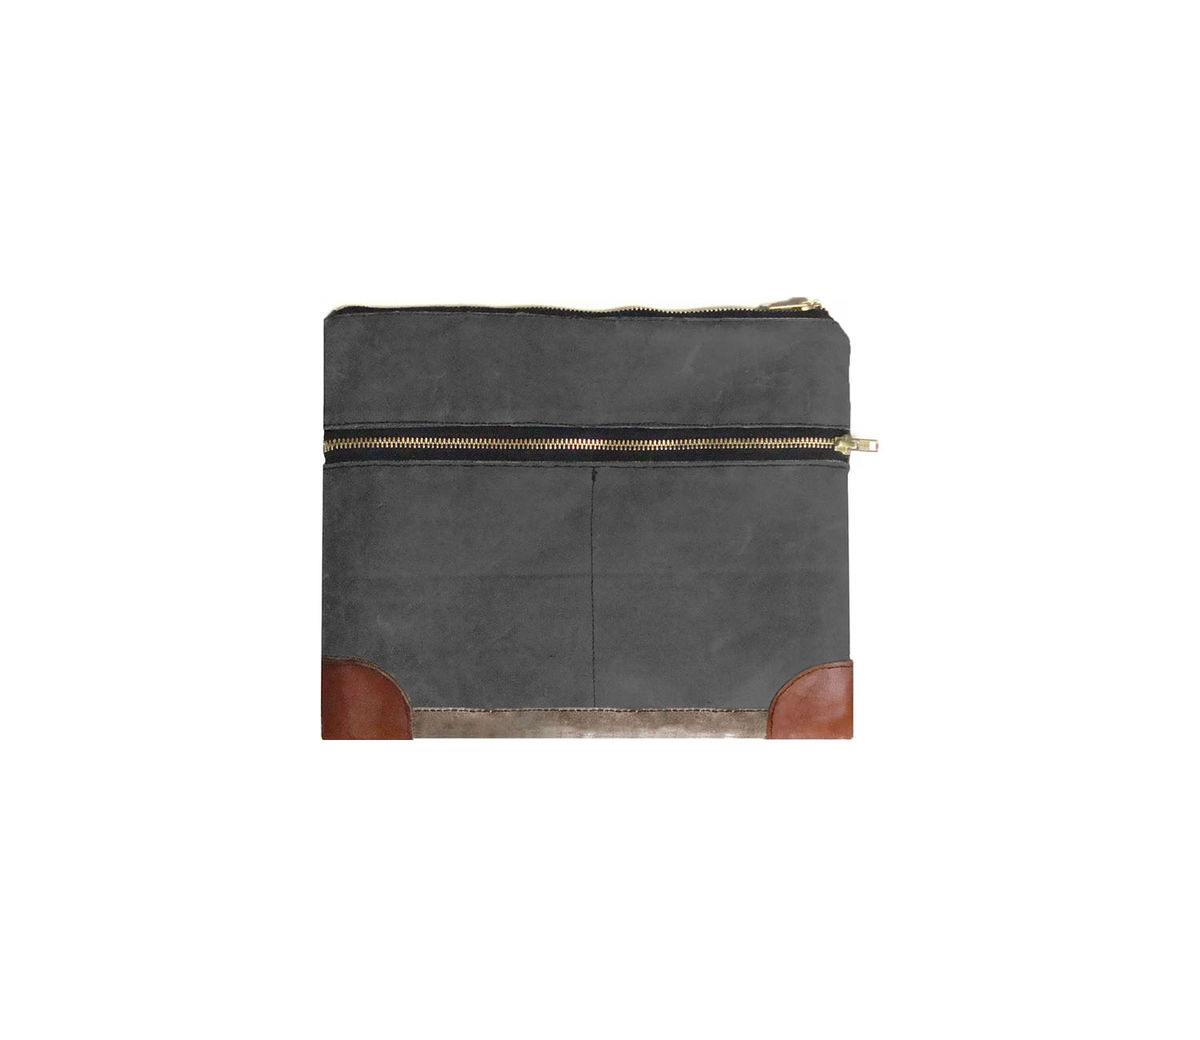 Everything iPad Case, Waxed Canvas, Leather, Custom Dyed in Confederate Grey - product images  of